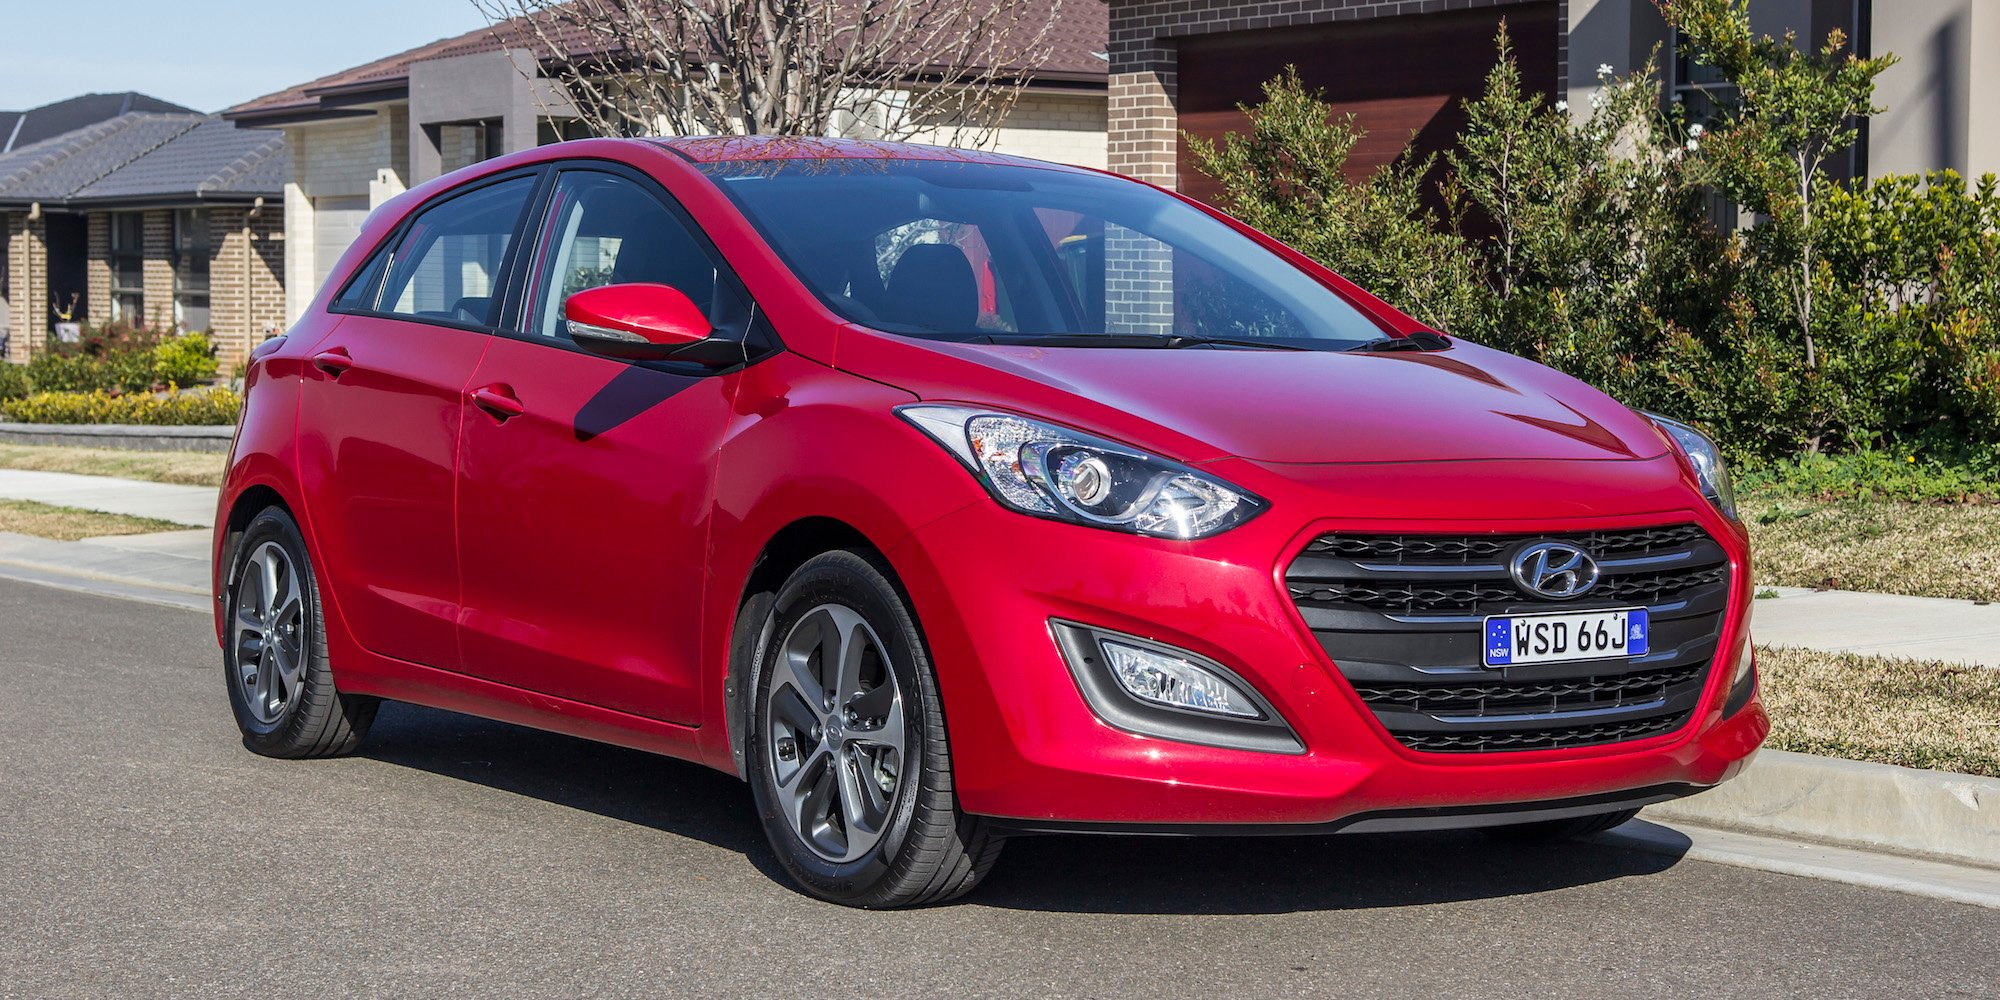 Cool Mazda 3 V Toyota Corolla V Hyundai I30 Small Hatch Comparison  Photos